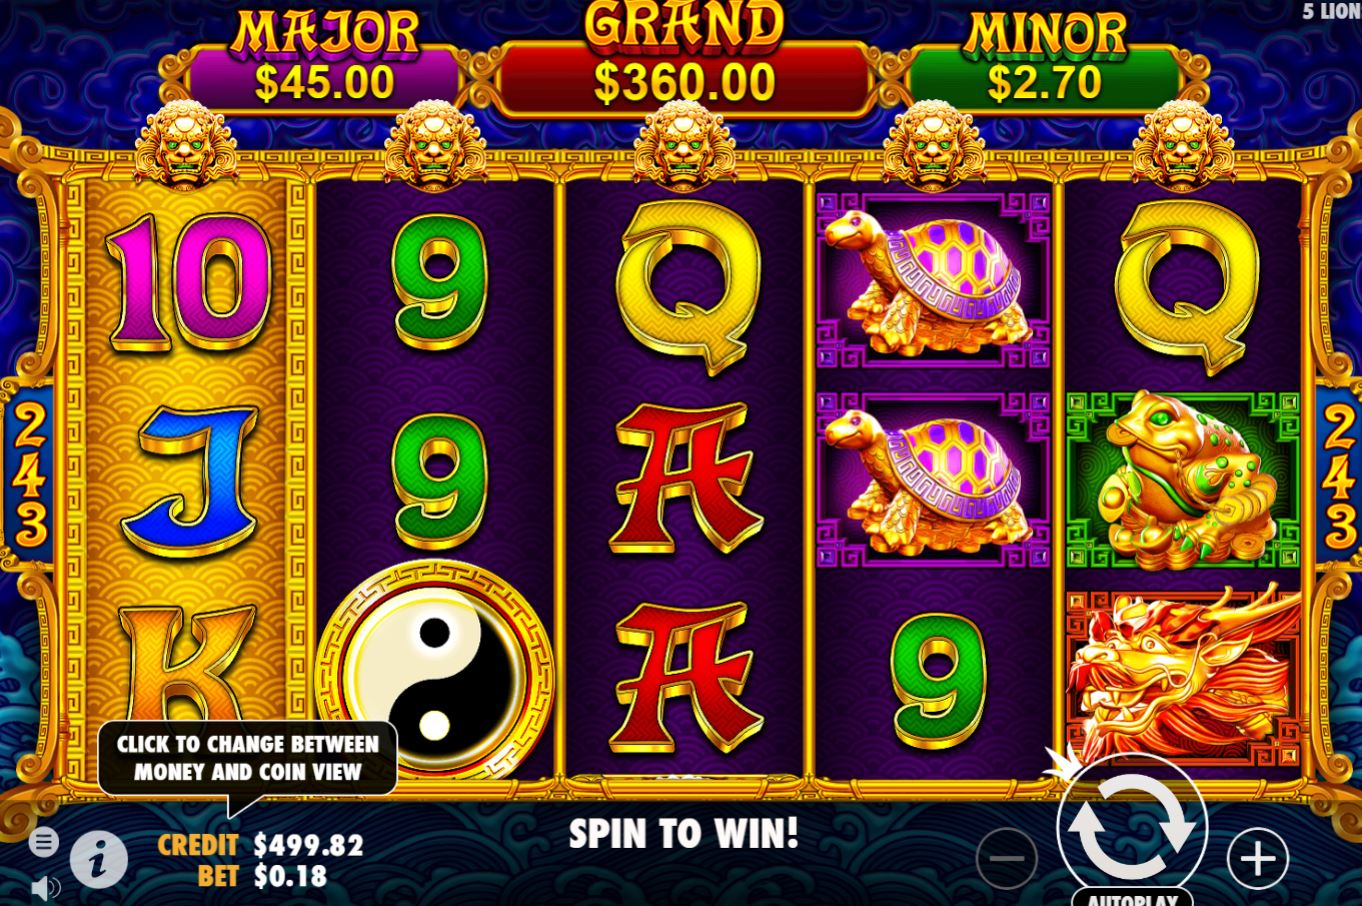 5 Lions Gold slot by Pragmatic Play can pay up to 7000x bet!